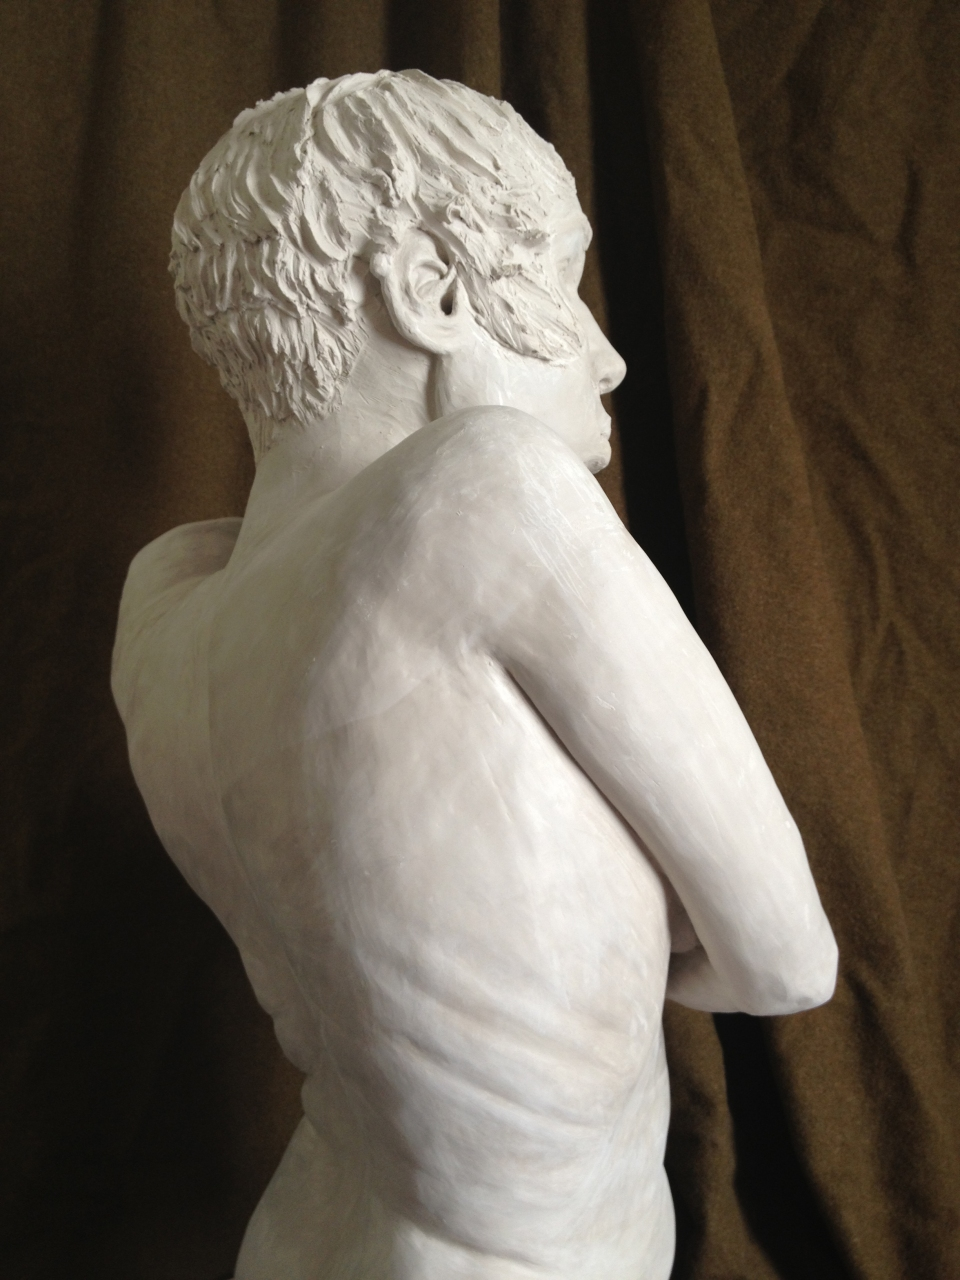 [Right side of Maya de Ceano-Vivas' sculpture.]